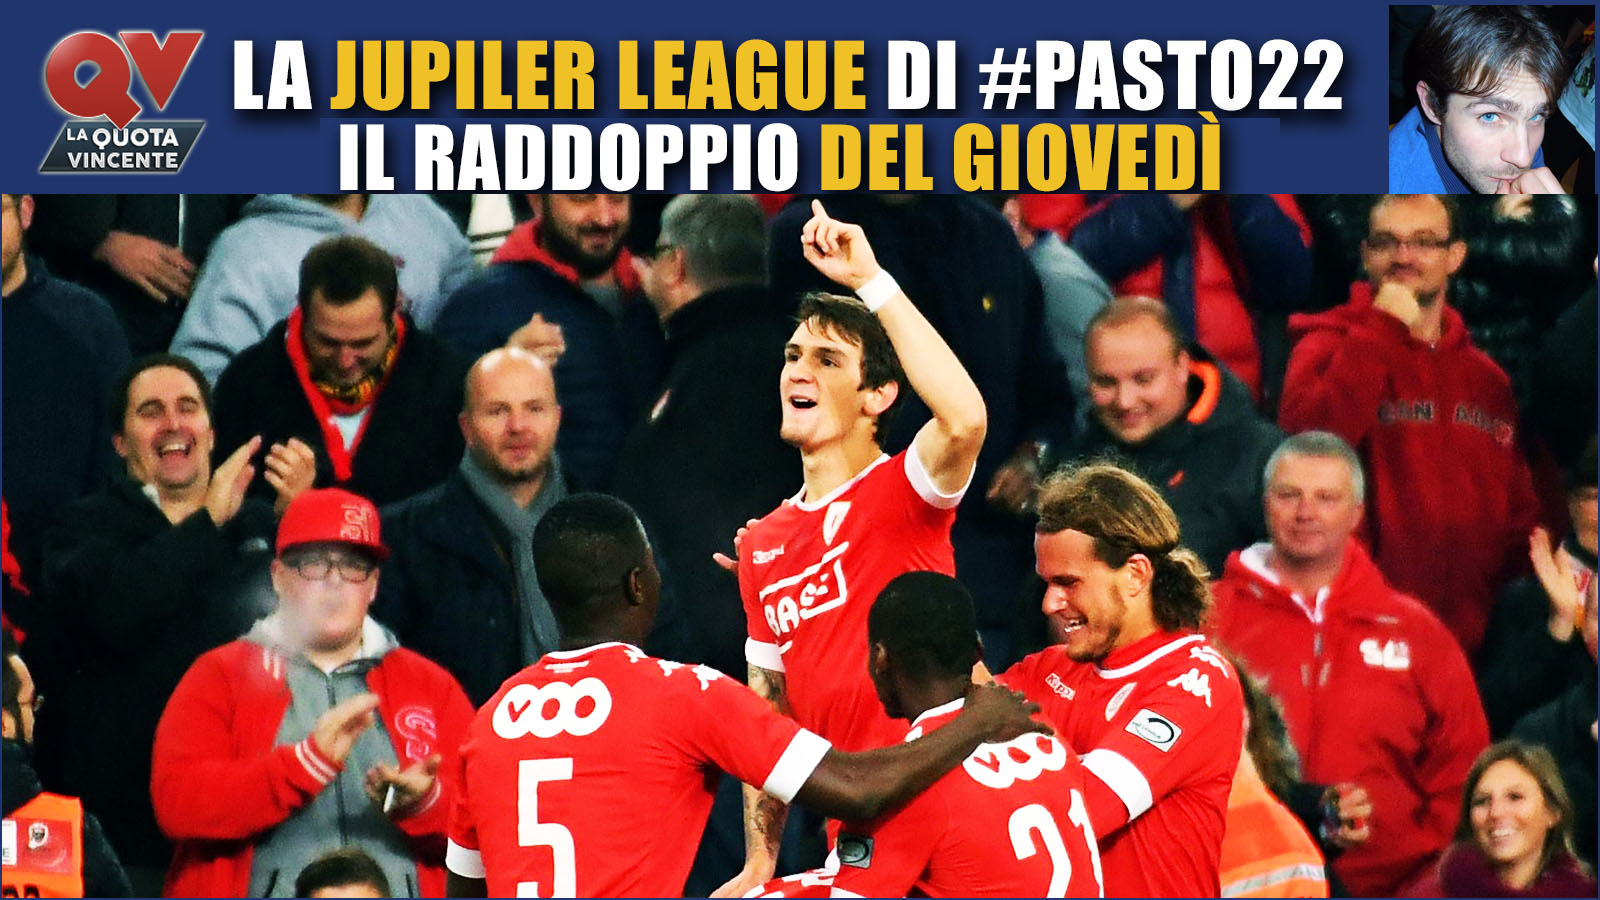 jupiler_league_blog_calcio_news_blog_standard_liegi_pasto22jupiler_league_blog_calcio_news_blog_standard_liegi_pasto22